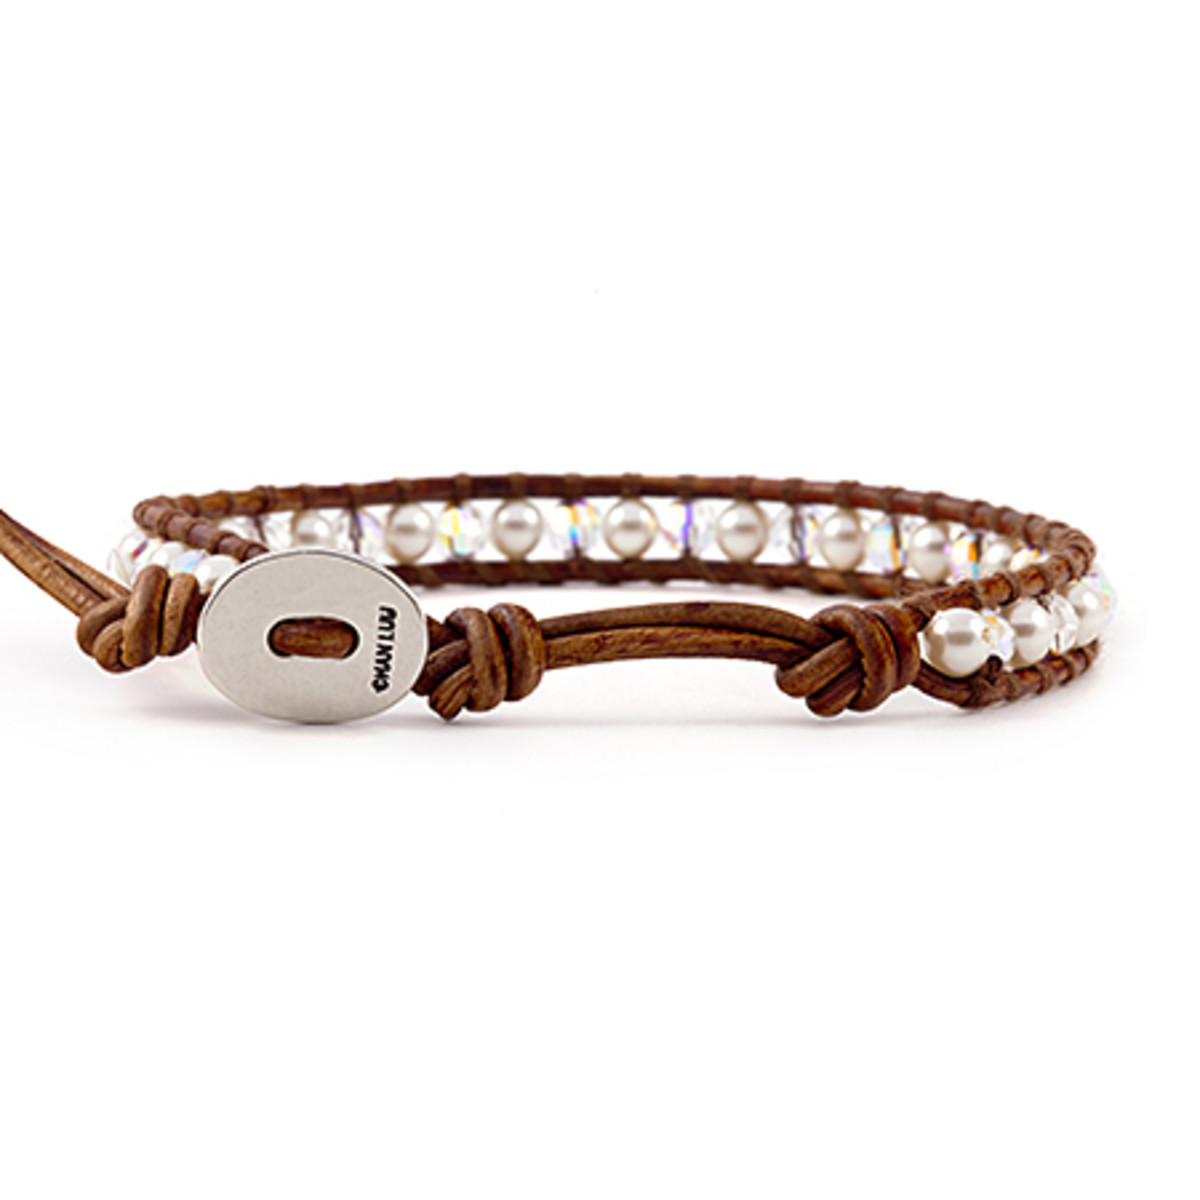 leather wrap bracelet by Chan Luu with distinctive Chan Luu engraved button